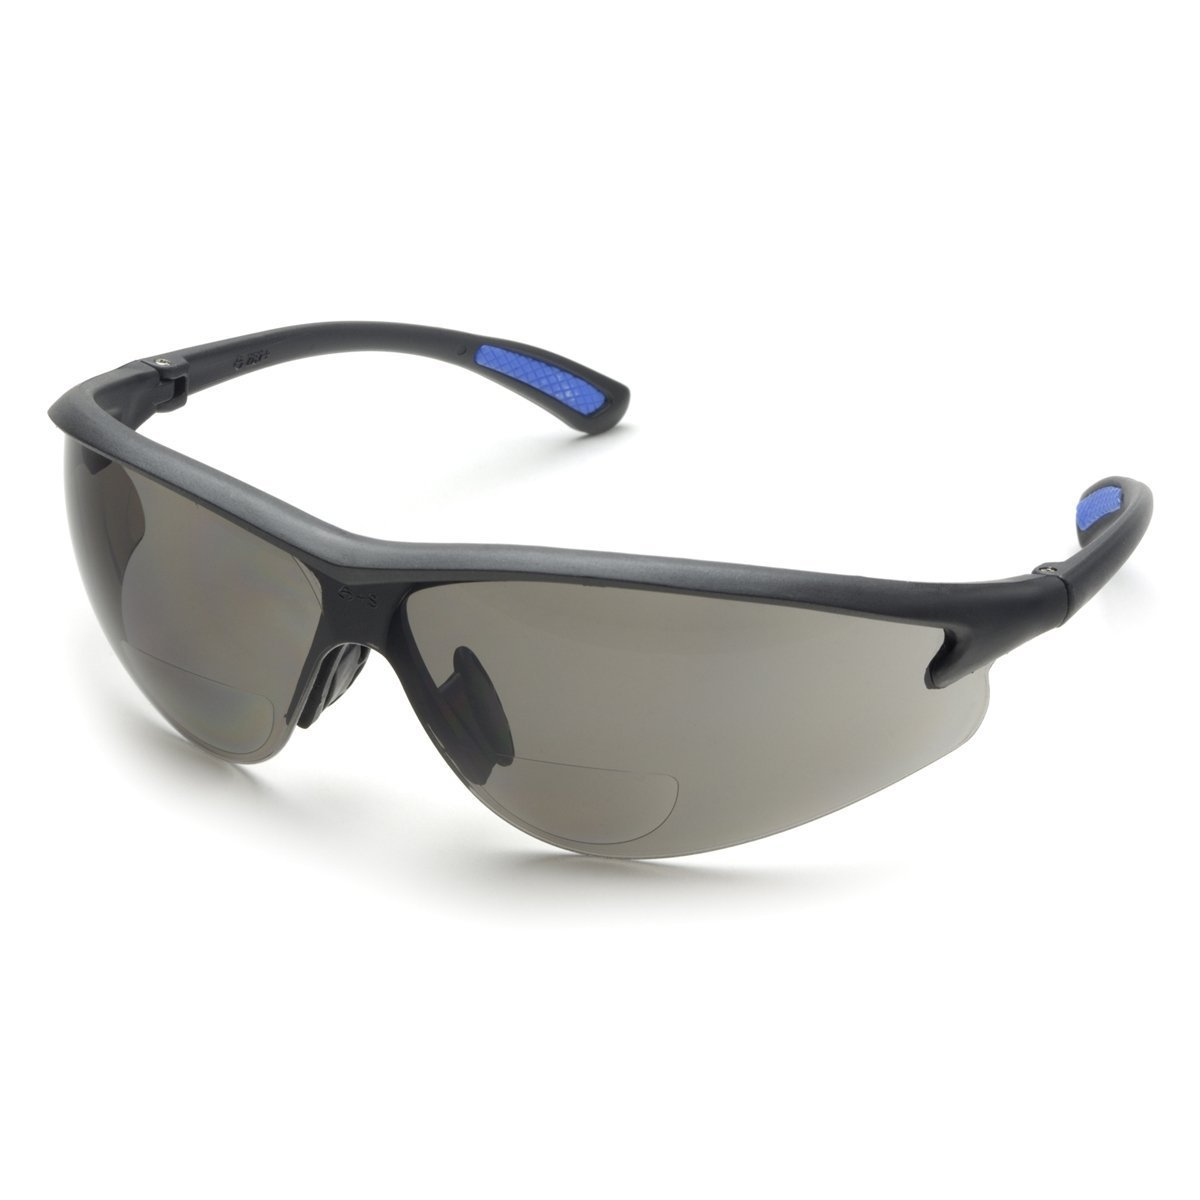 Elvex Bifocal Reading Safety Glasses in Polycarbonate Gray Lens 2.5 Diopter